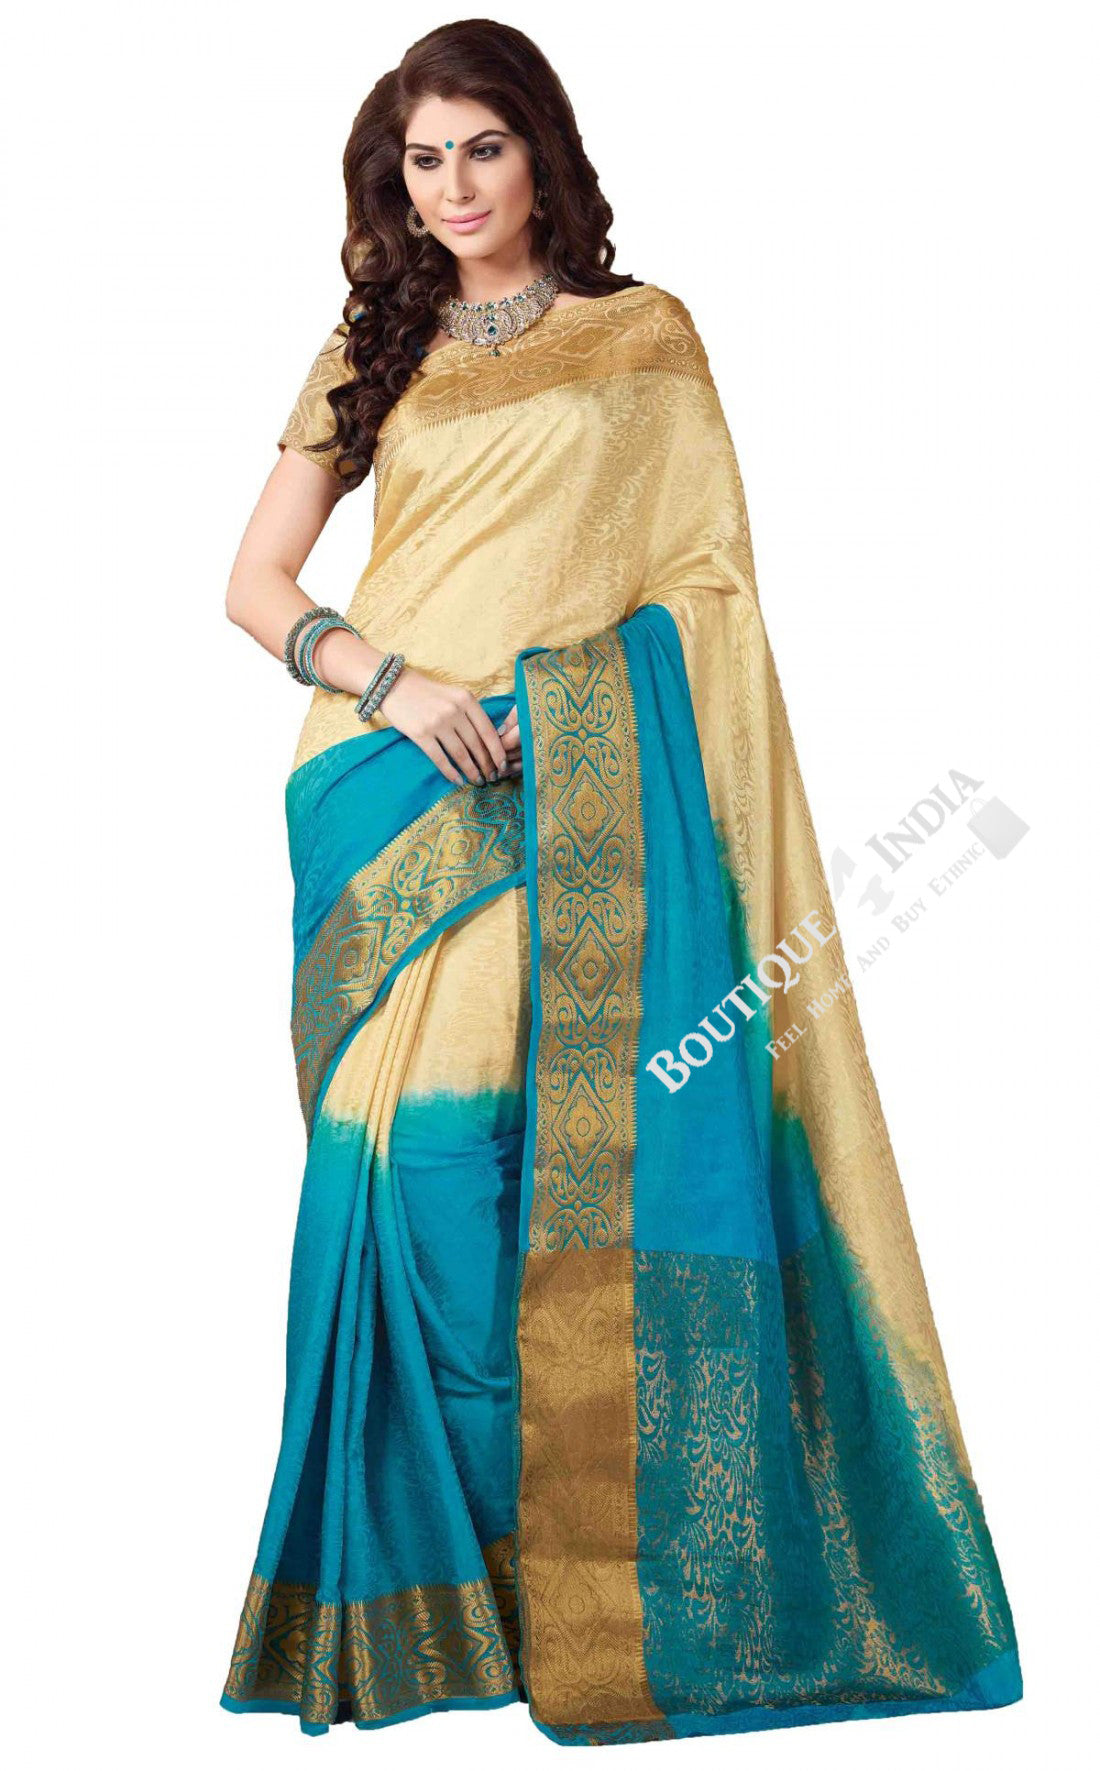 Jacquard Silk Saree in Blue, Cream and Golden Jarri - Boutique4India Inc.